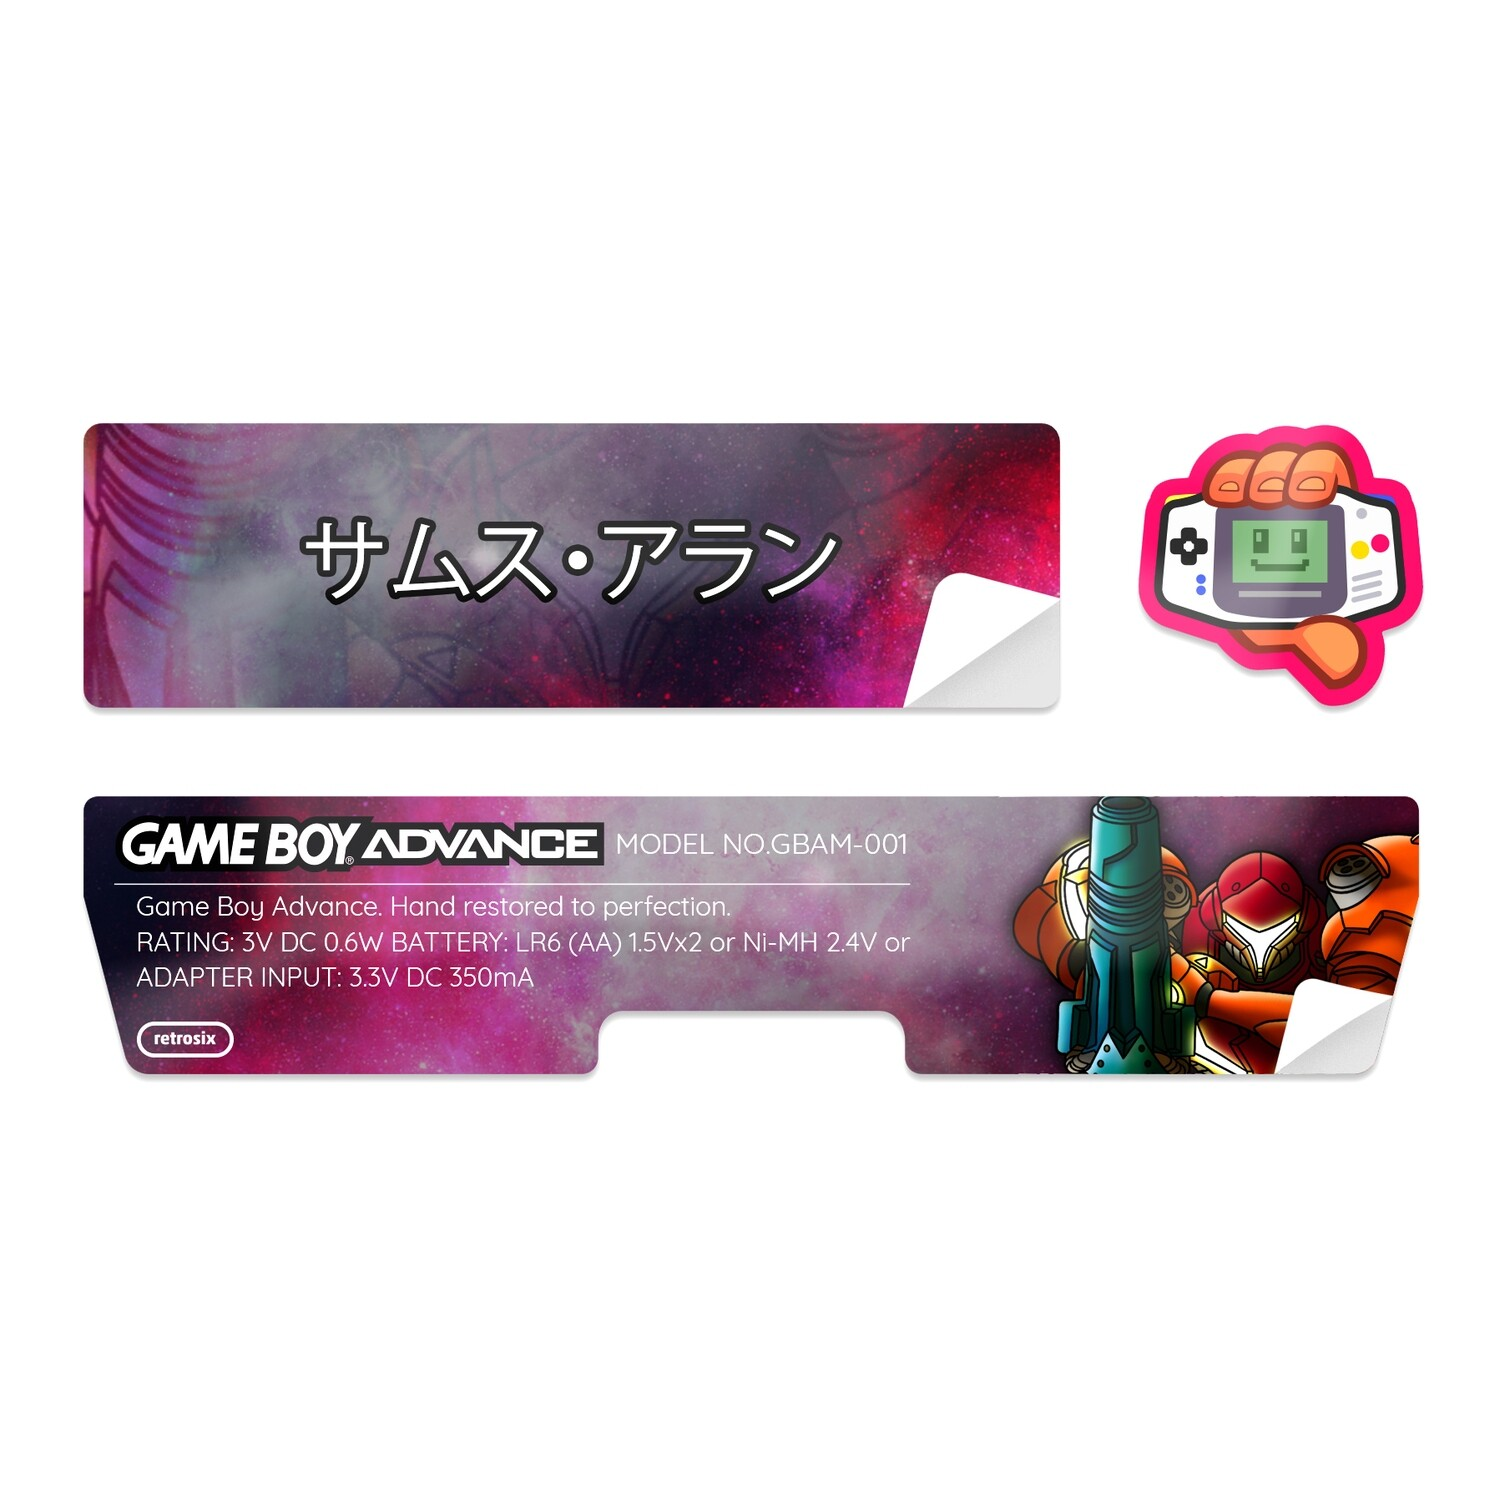 Game Boy Advance Sticker (Metroid B)